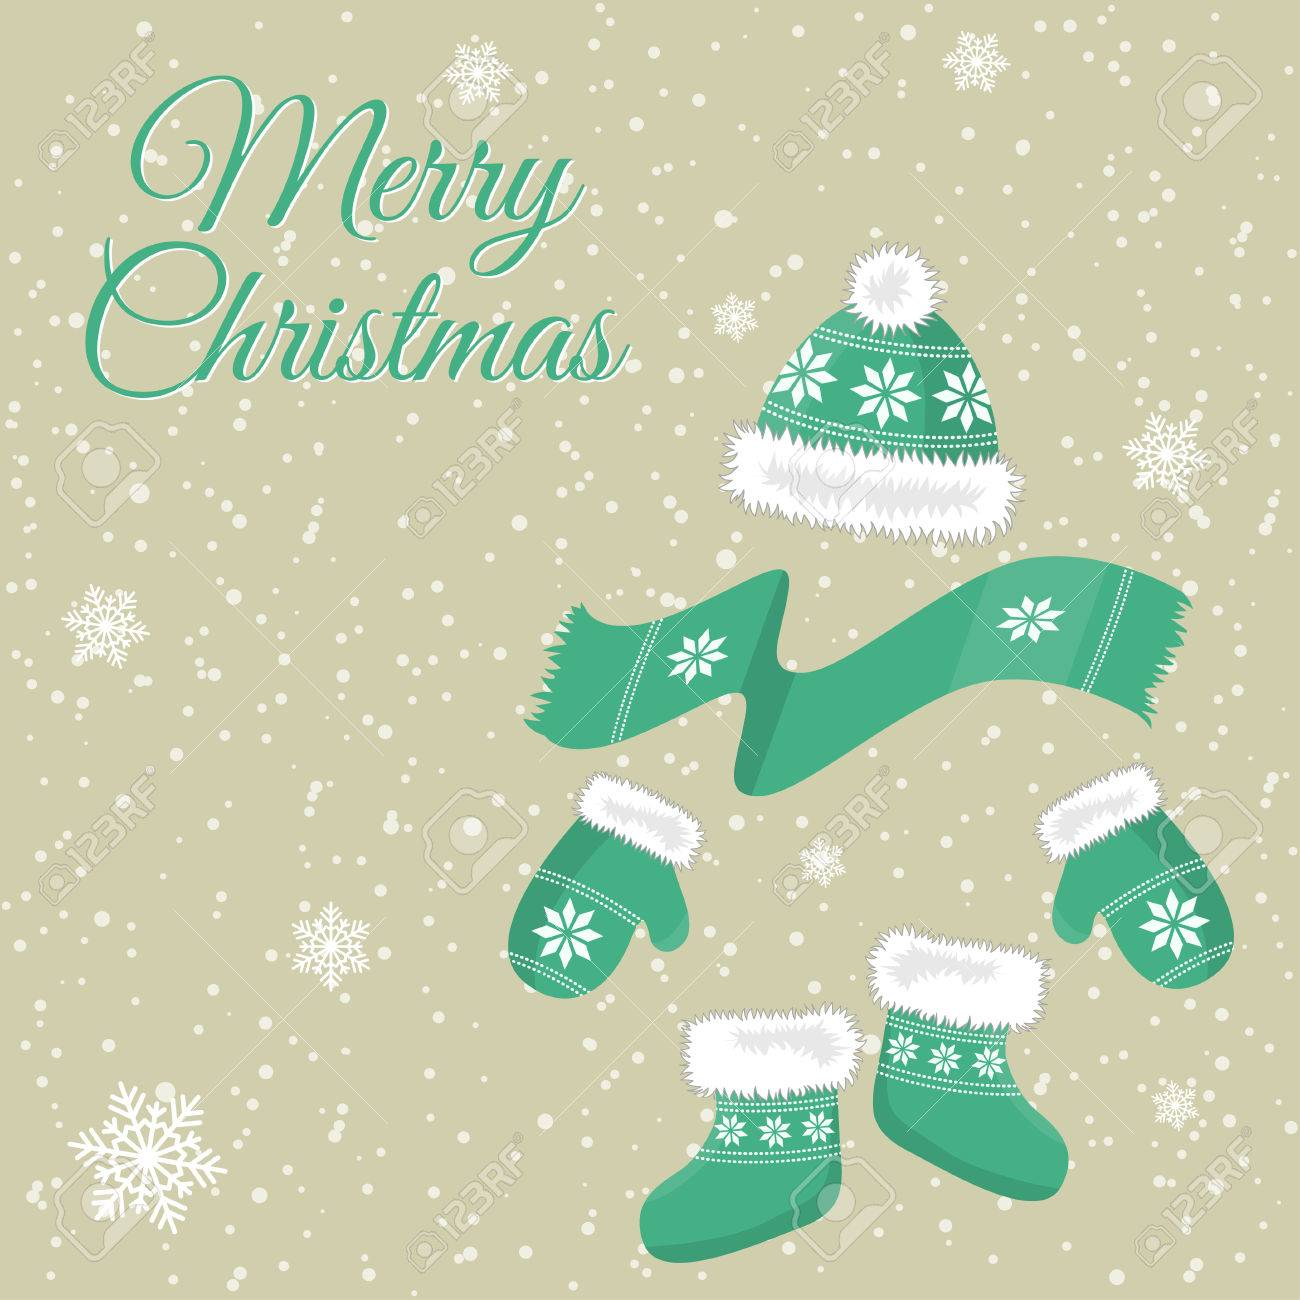 Mitten christmas decorations - Christmas Card With Christmas Decorations Hats Mittens Socks And A Scarf Stock